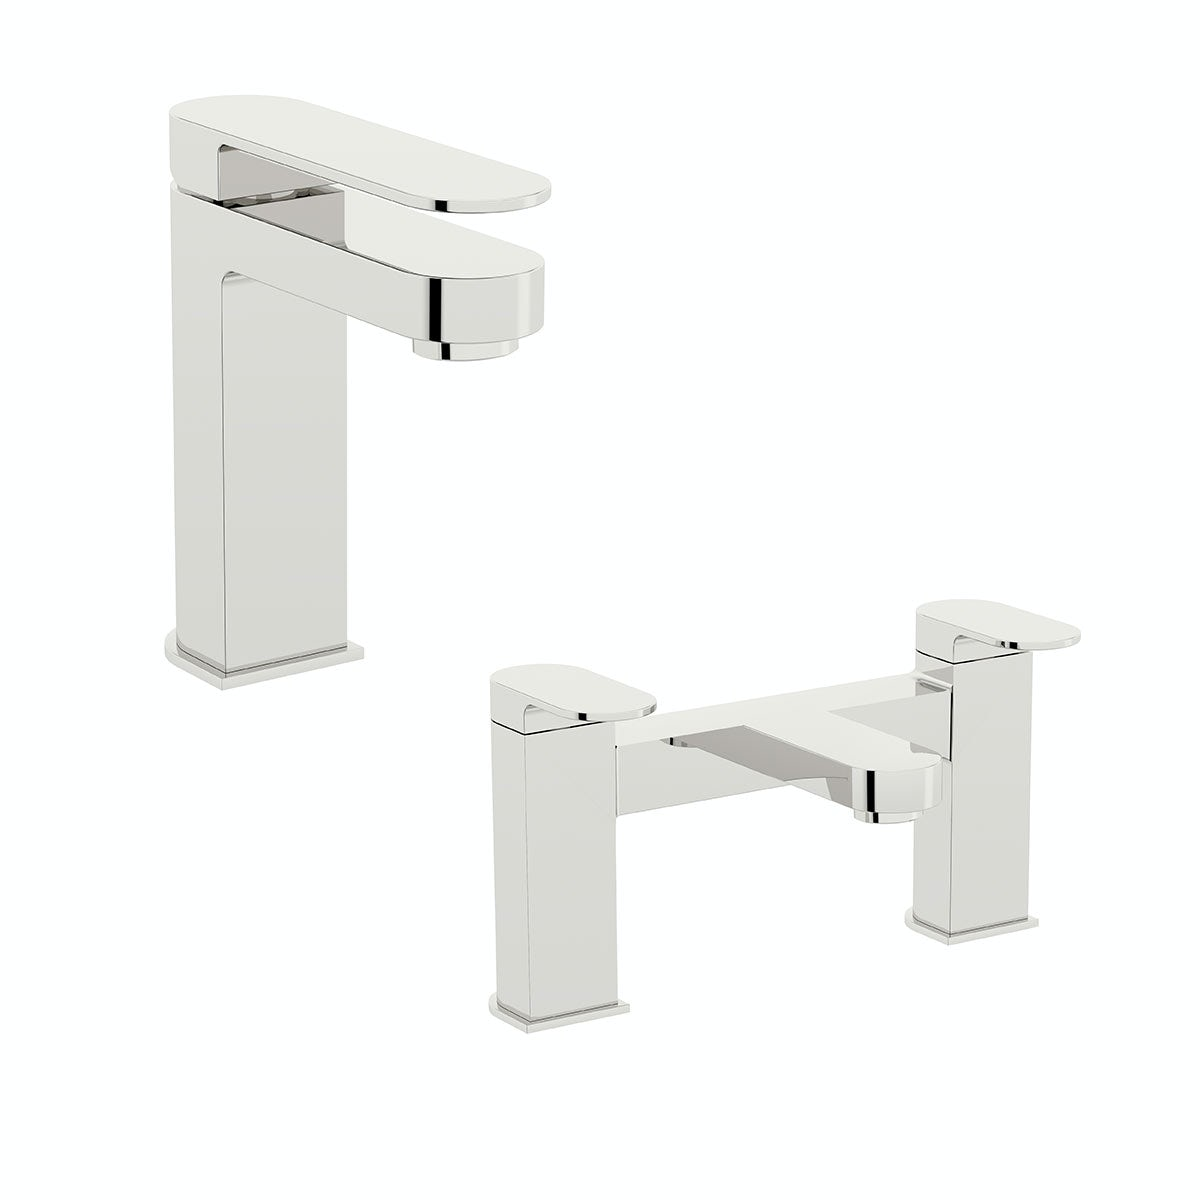 Mode Hardy basin and bath mixer tap pack